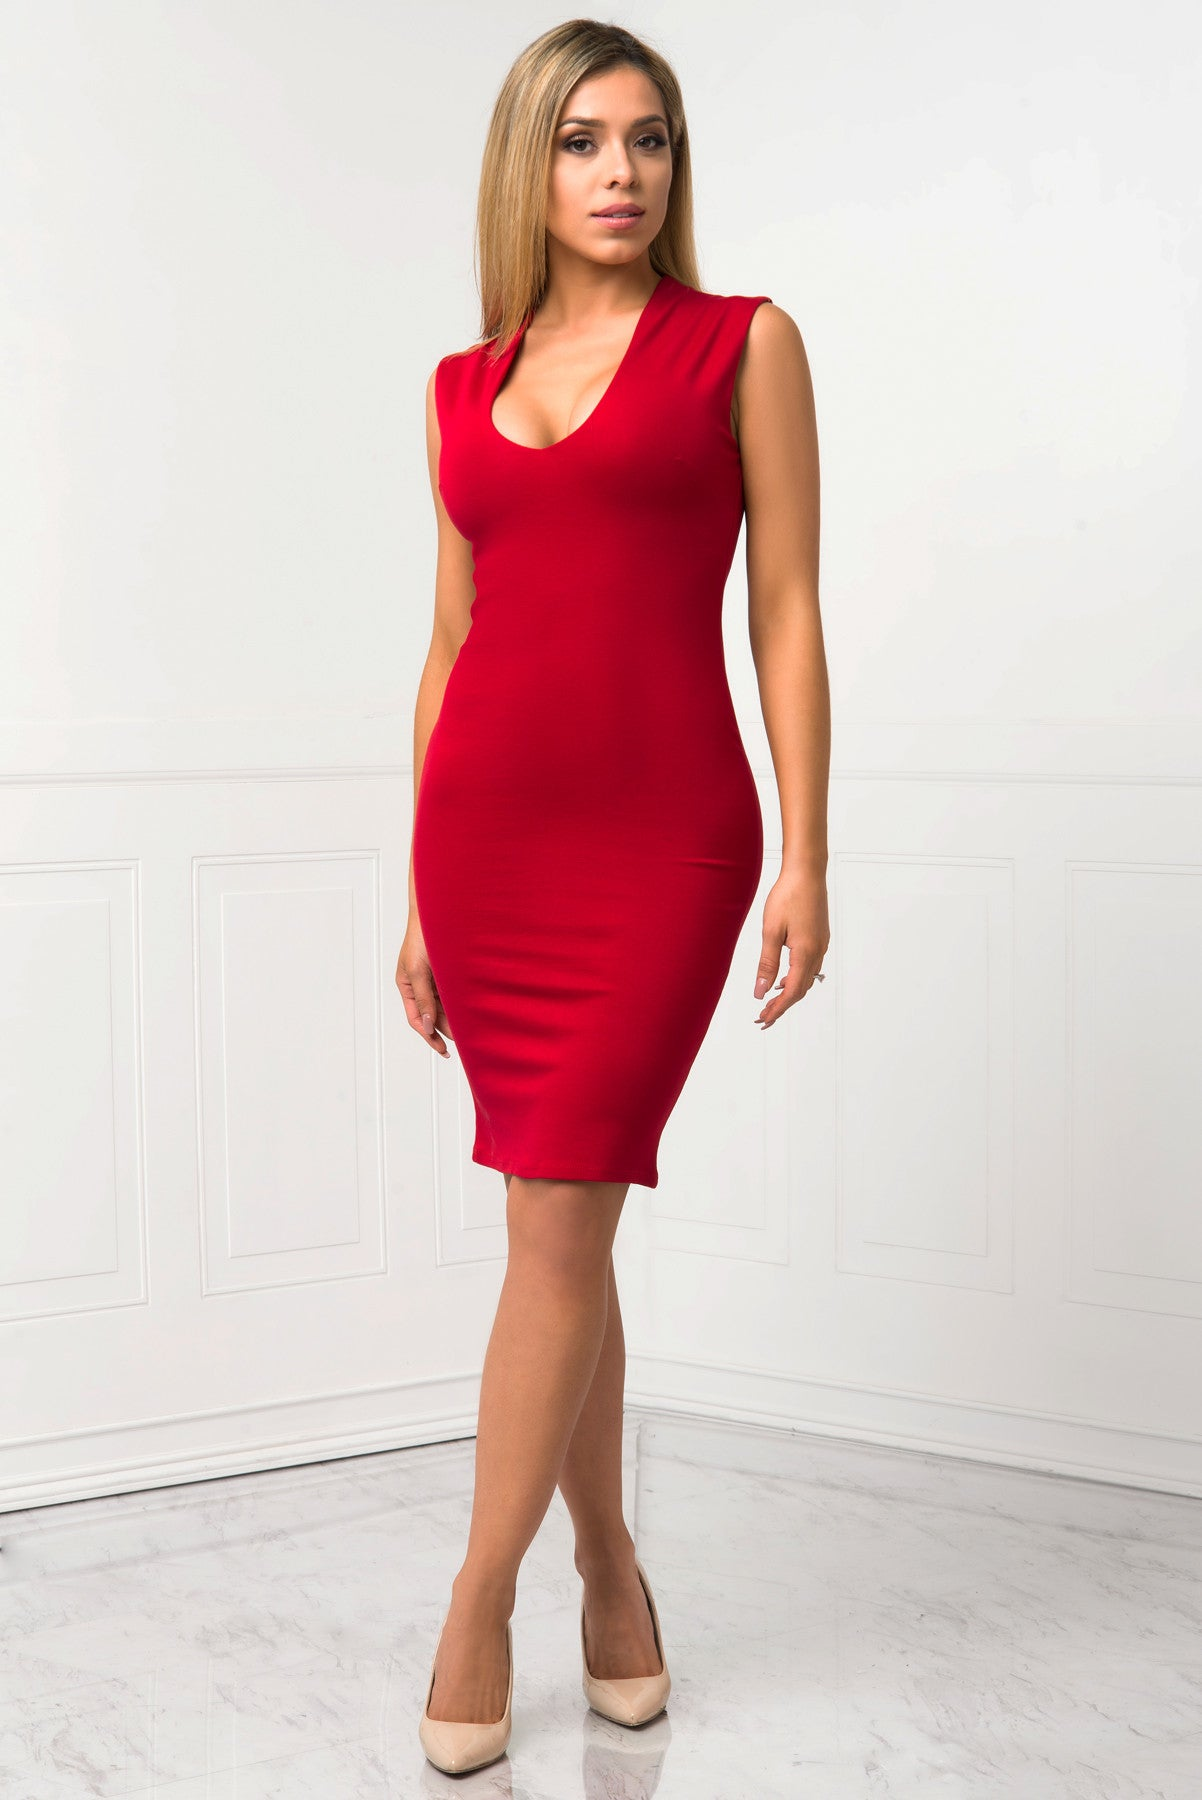 Danielle Red Dress - Fashion Effect Store  - 1